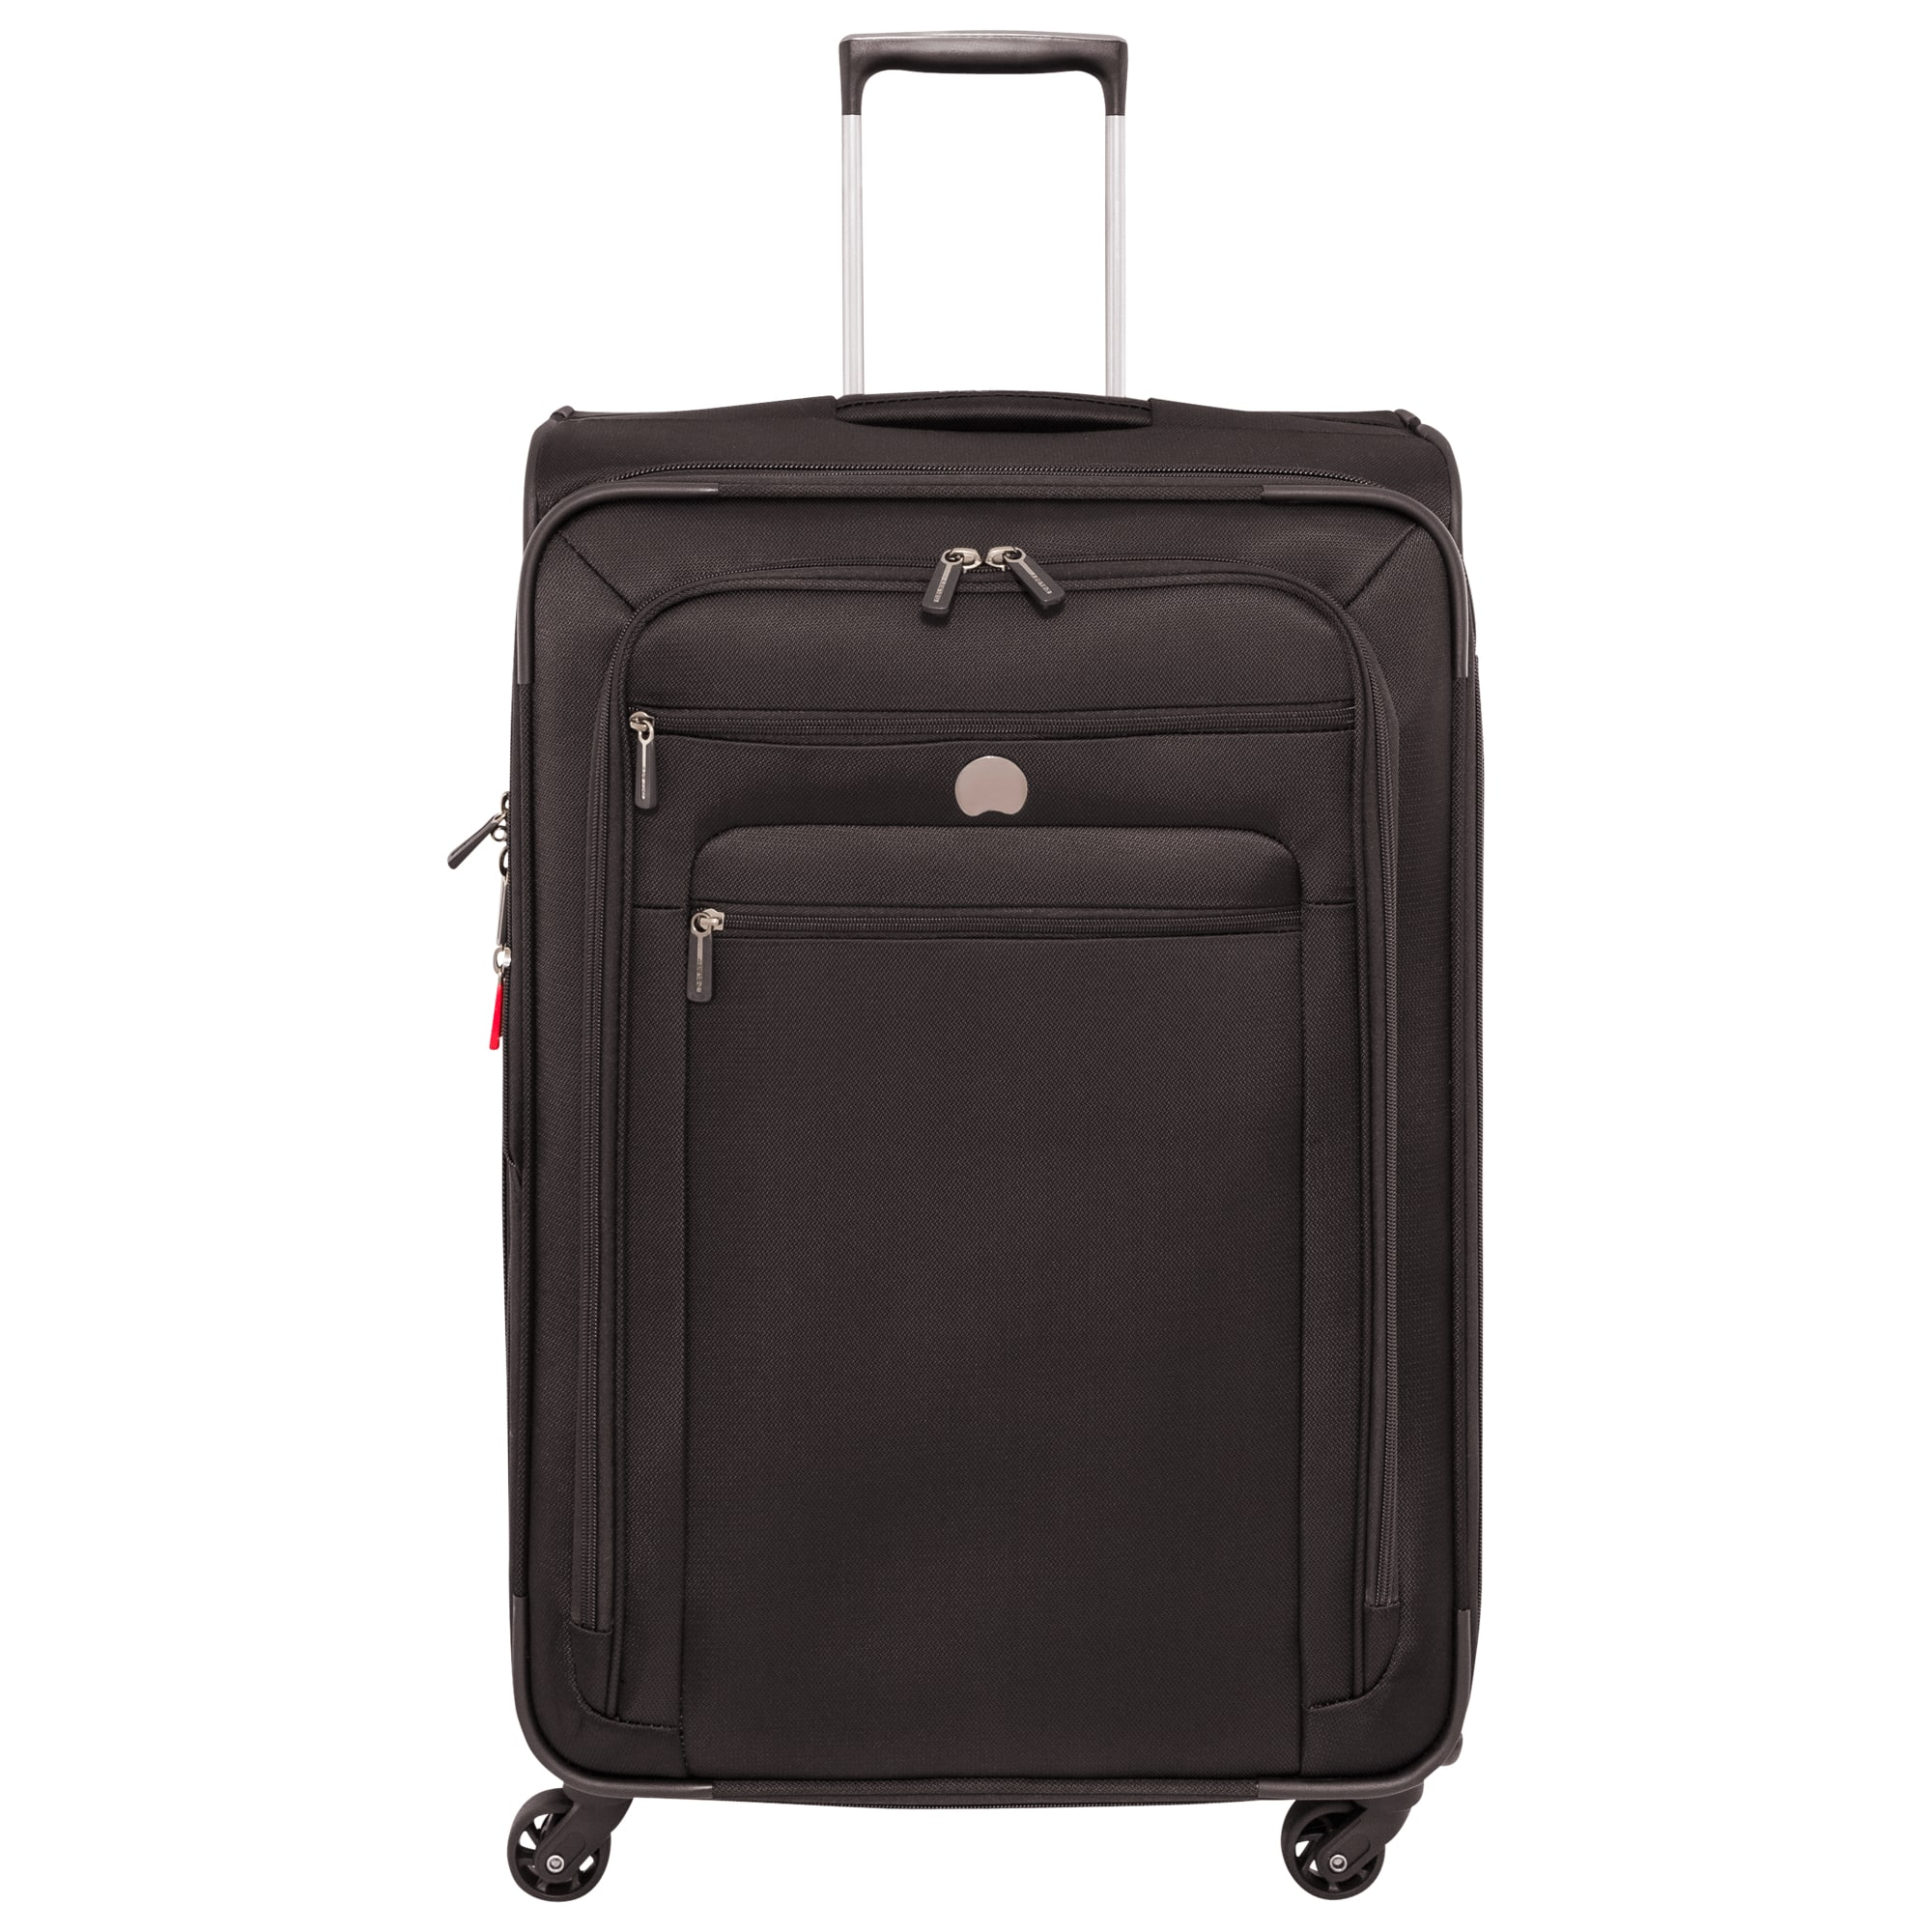 """Delsey Paris Sky 2.0 25"""" Checked Luggage $58 + Free Shipping"""